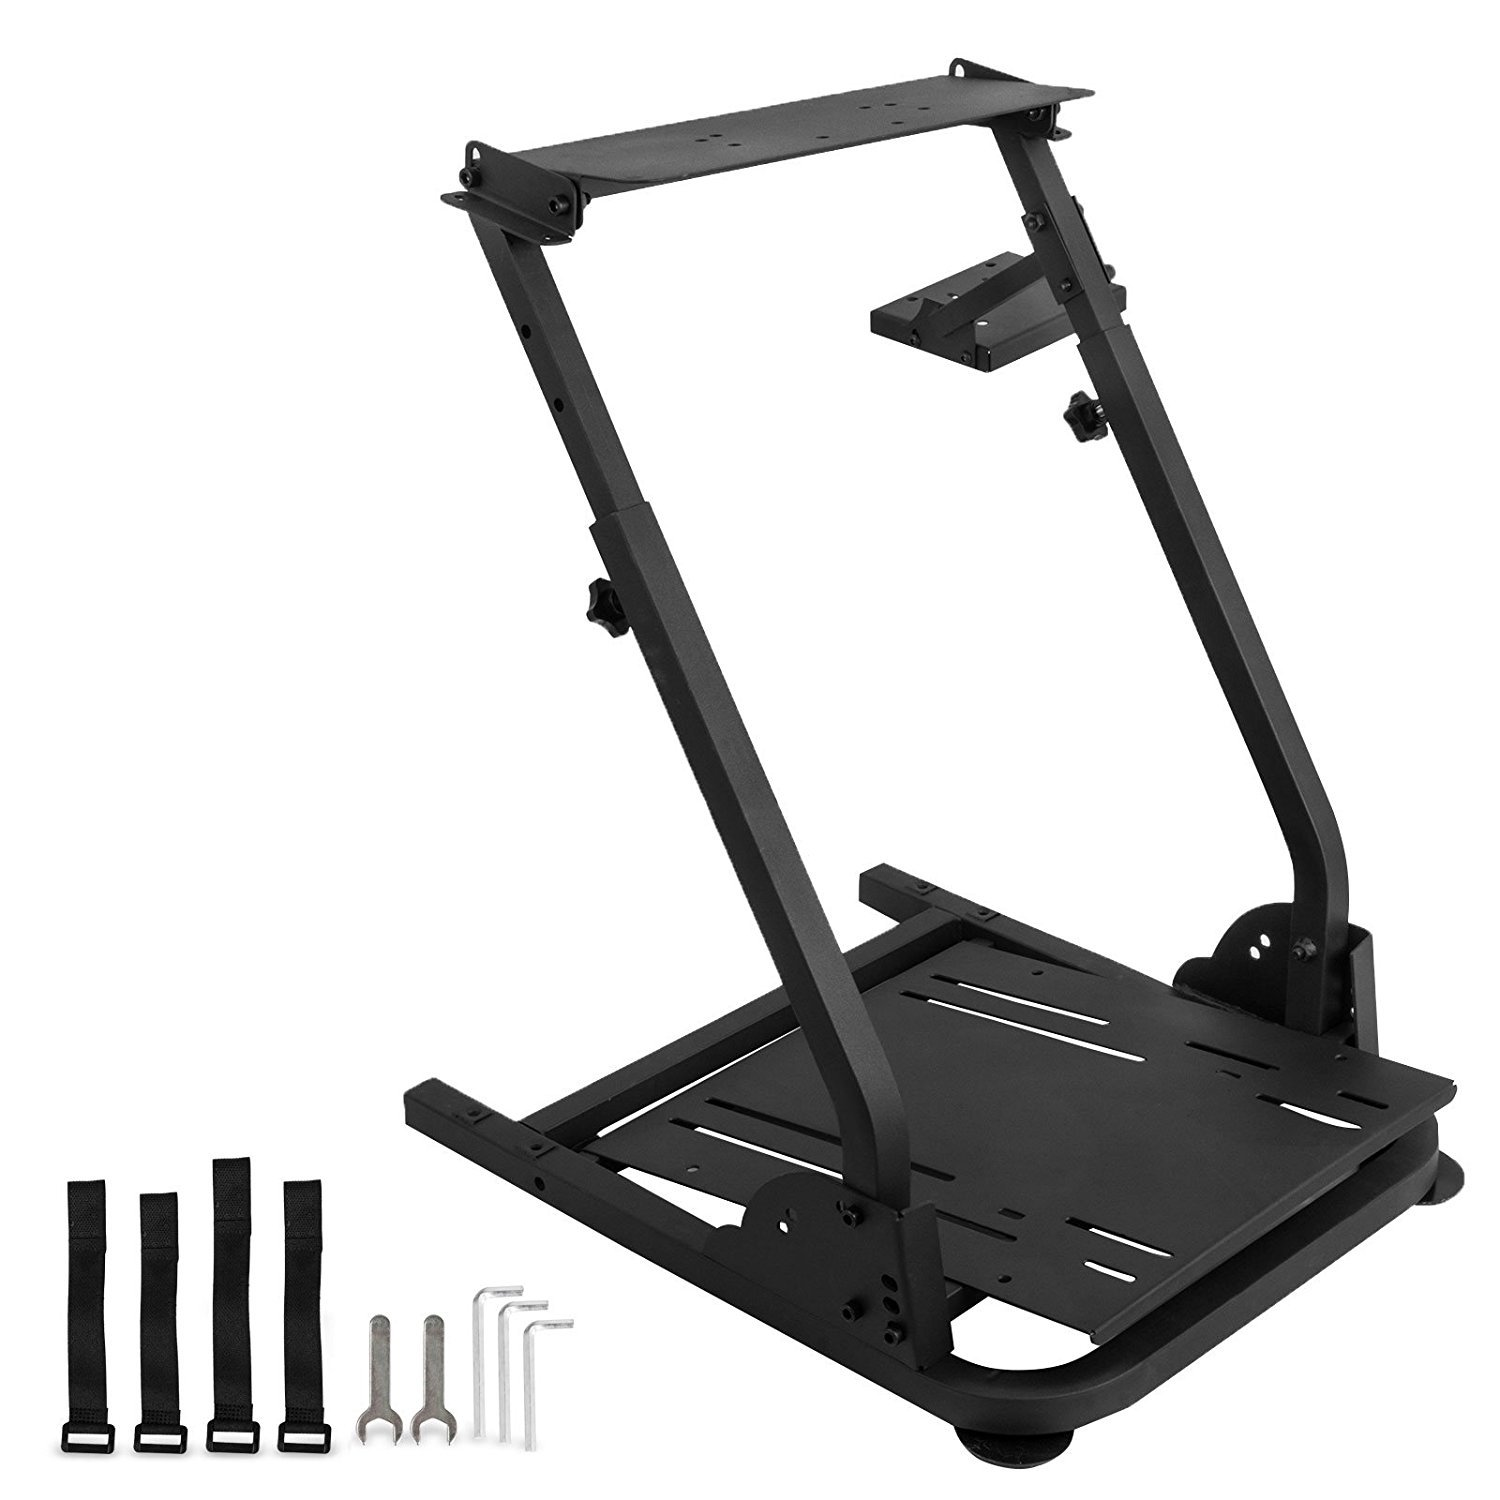 Vevor Racing Simulator Steering Wheel Stand Stand For G27 G29 Ps4 G920 T300rs Walmart Com Walmart Com